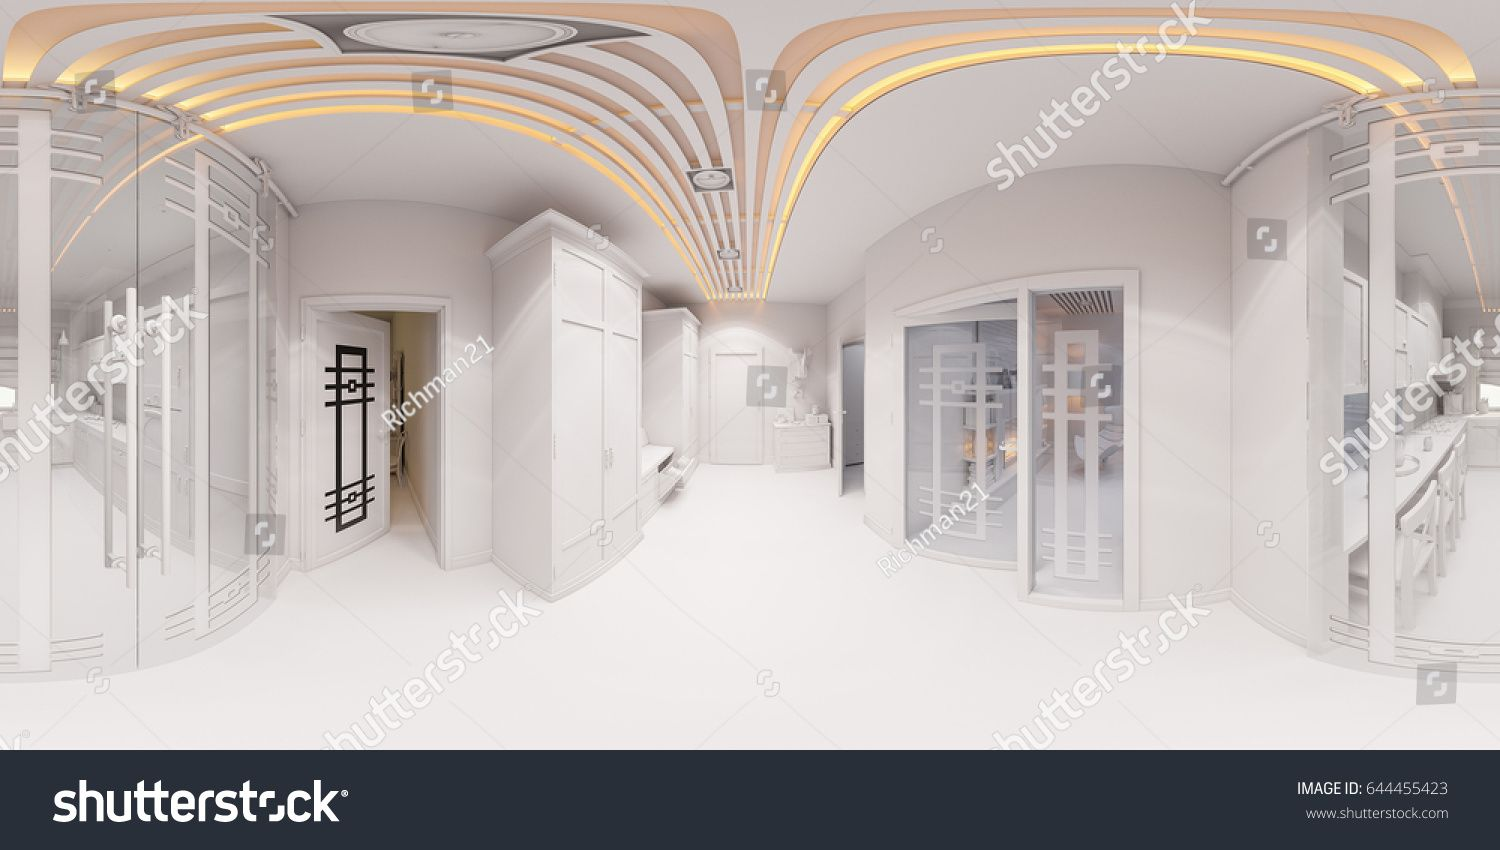 3d Illustration Hall Interior Design In Classic Style. Render Is Made,  Seamless 360 Degree Spherical Panorama Without Textures And Materials In  Gray Tones.